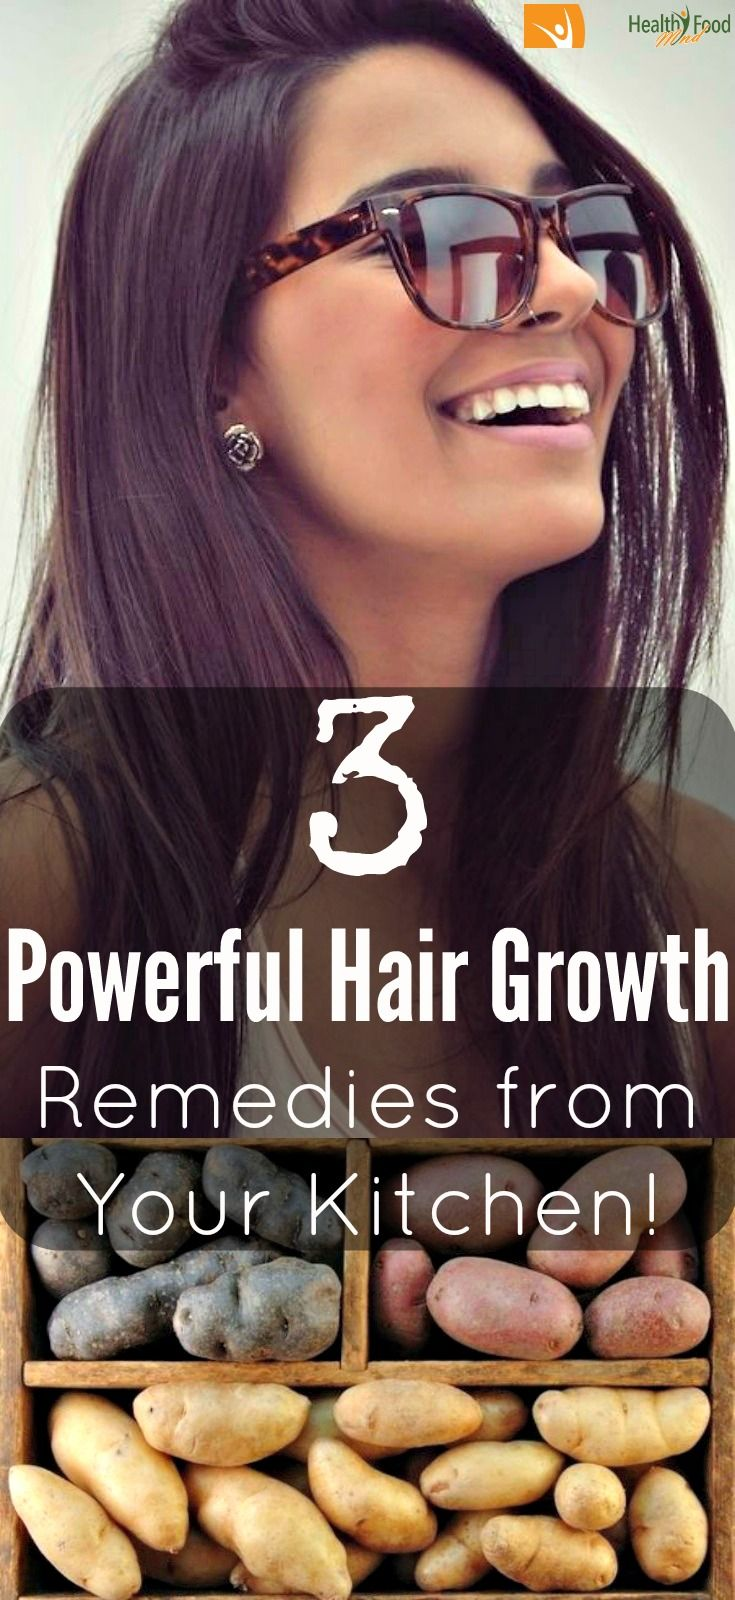 Did you know that you can encourage hair growth with just 3 simple hair growth remedies form your kitchen? You can definitely stimulate more vivid and thicker hair growth, with normal effort, just using the right ingredients!